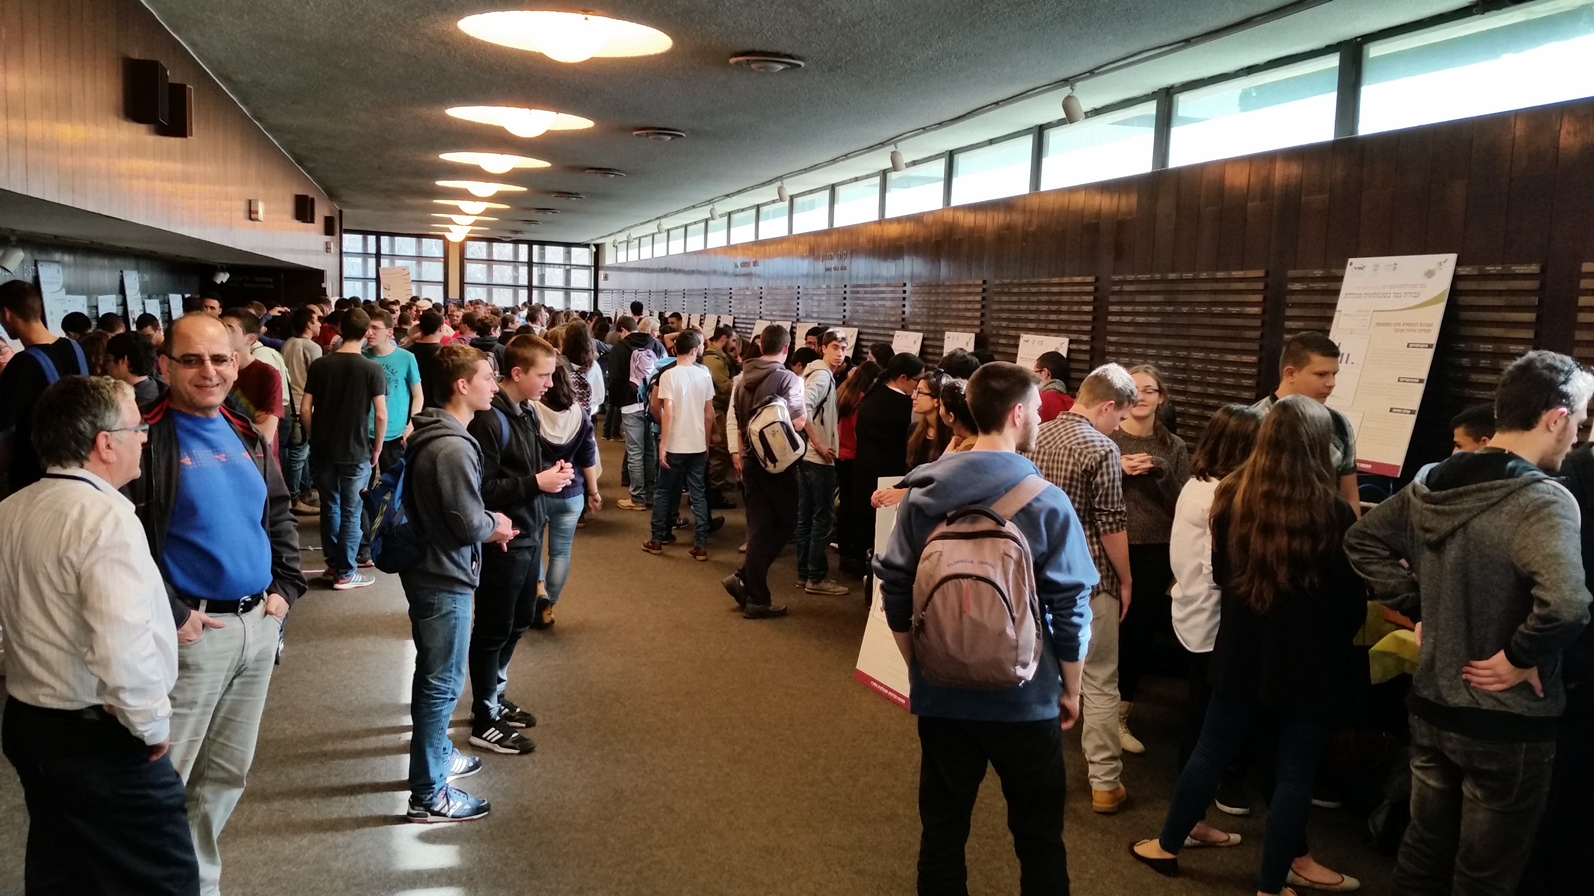 Hundreds of Israel Sci-Tech freshmen came to see the projects and learn more about STEM. Photo: courtesy